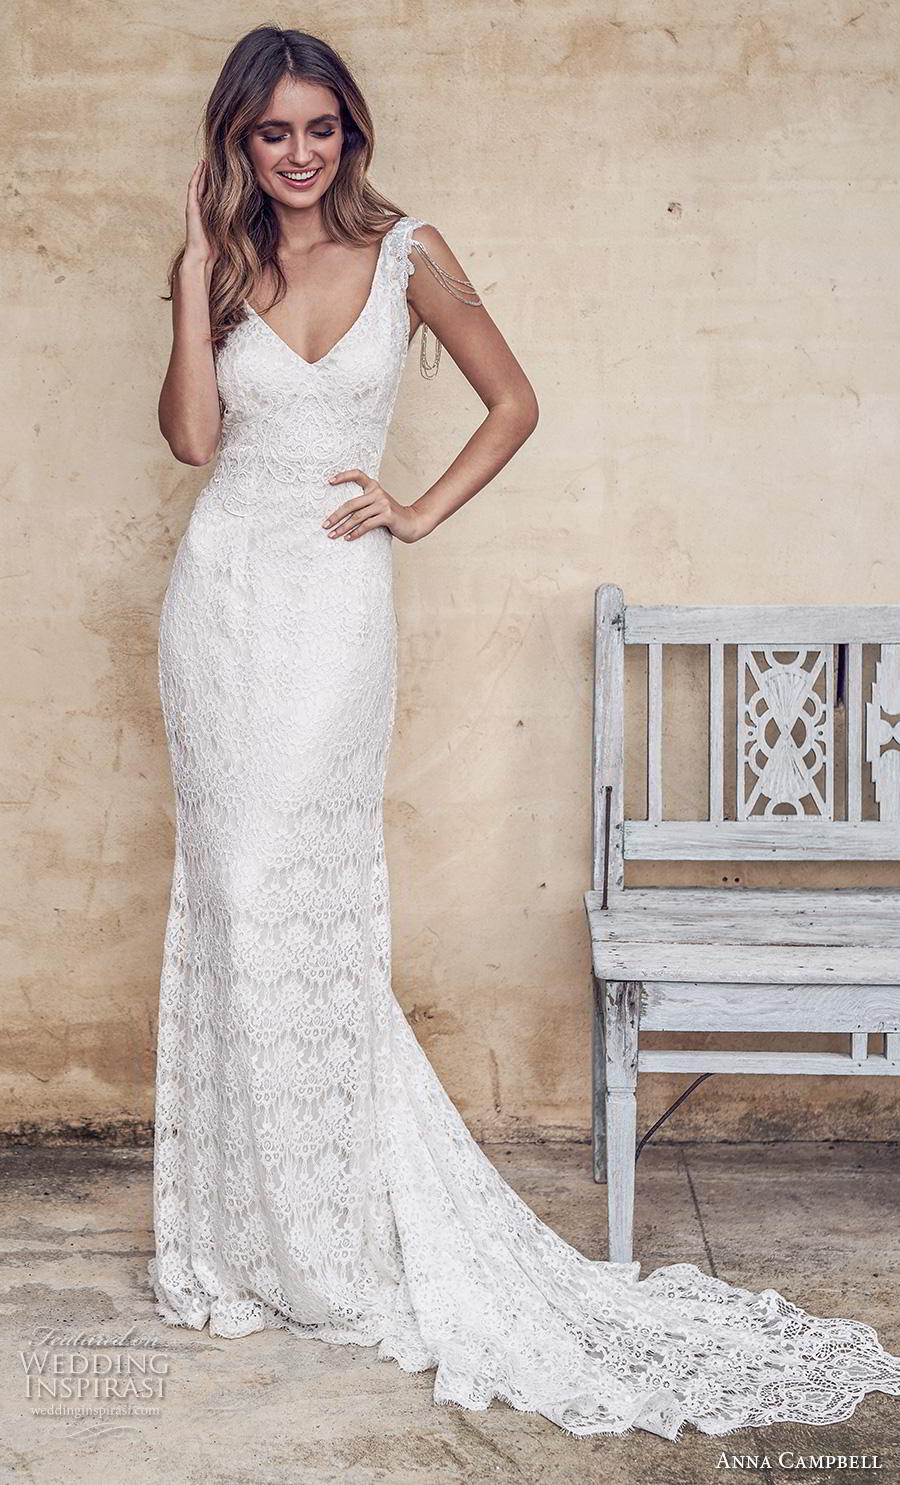 anna campbell 2019 bridal sleeveless v neck full embellishment elegant fit and flare sheath wedding dress open v back chapel train (11) mv